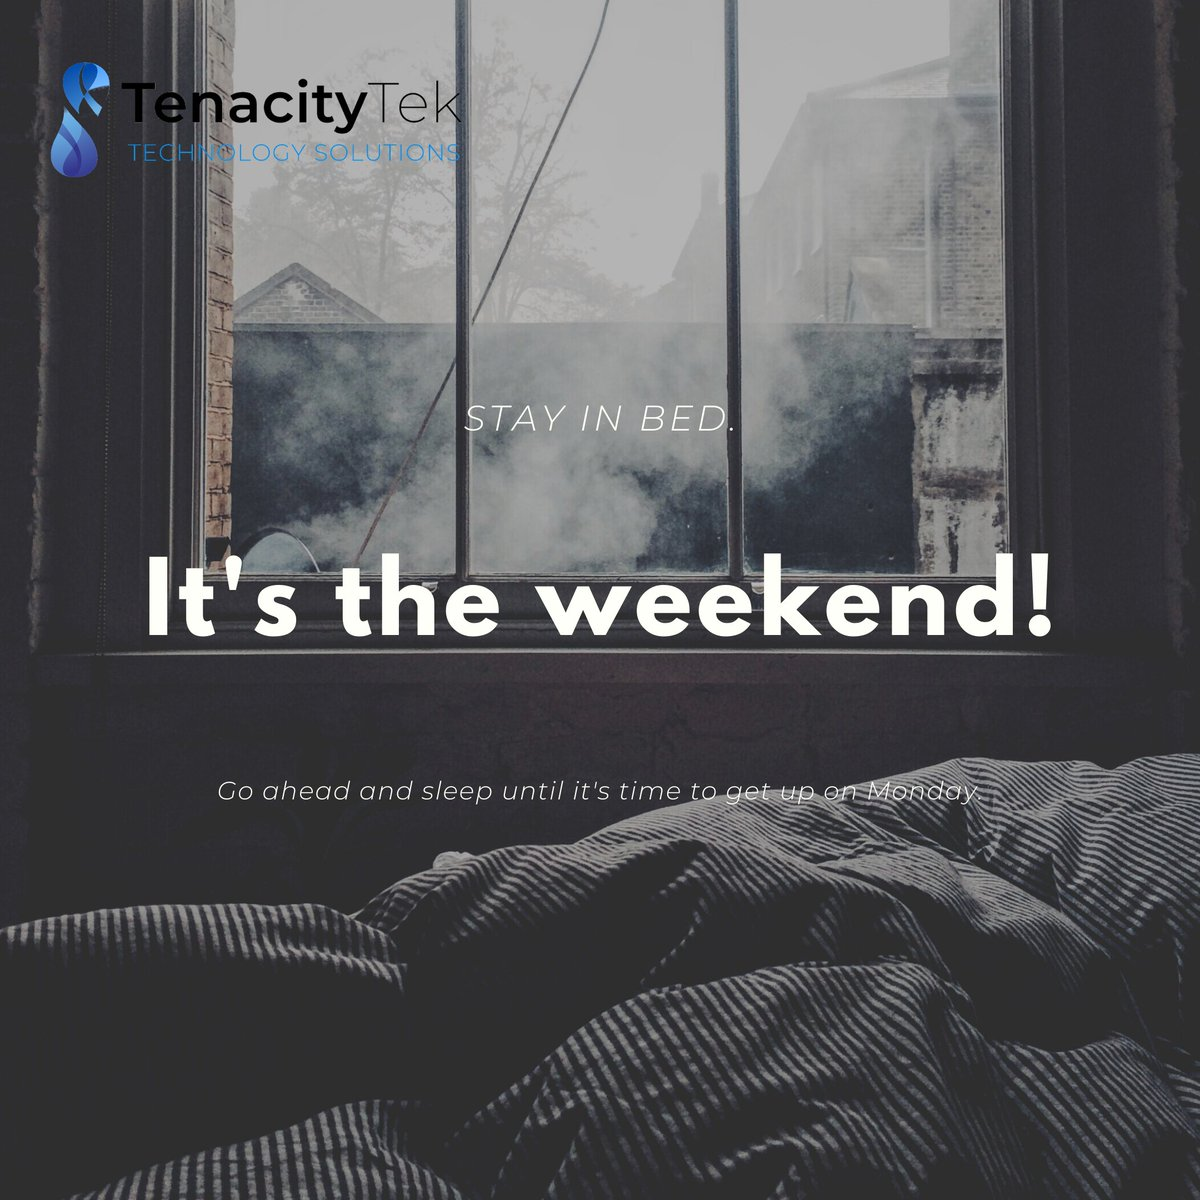 Happy weekends!    #weekend #love #weekendvibes #instagood #saturday #happy #friday #summer #nature #sunday #photography #photooftheday #travel #instagram #picoftheday #friends #fun #like #fashion #smile #food #follow #relax #family #goodvibes #life #bhfyp